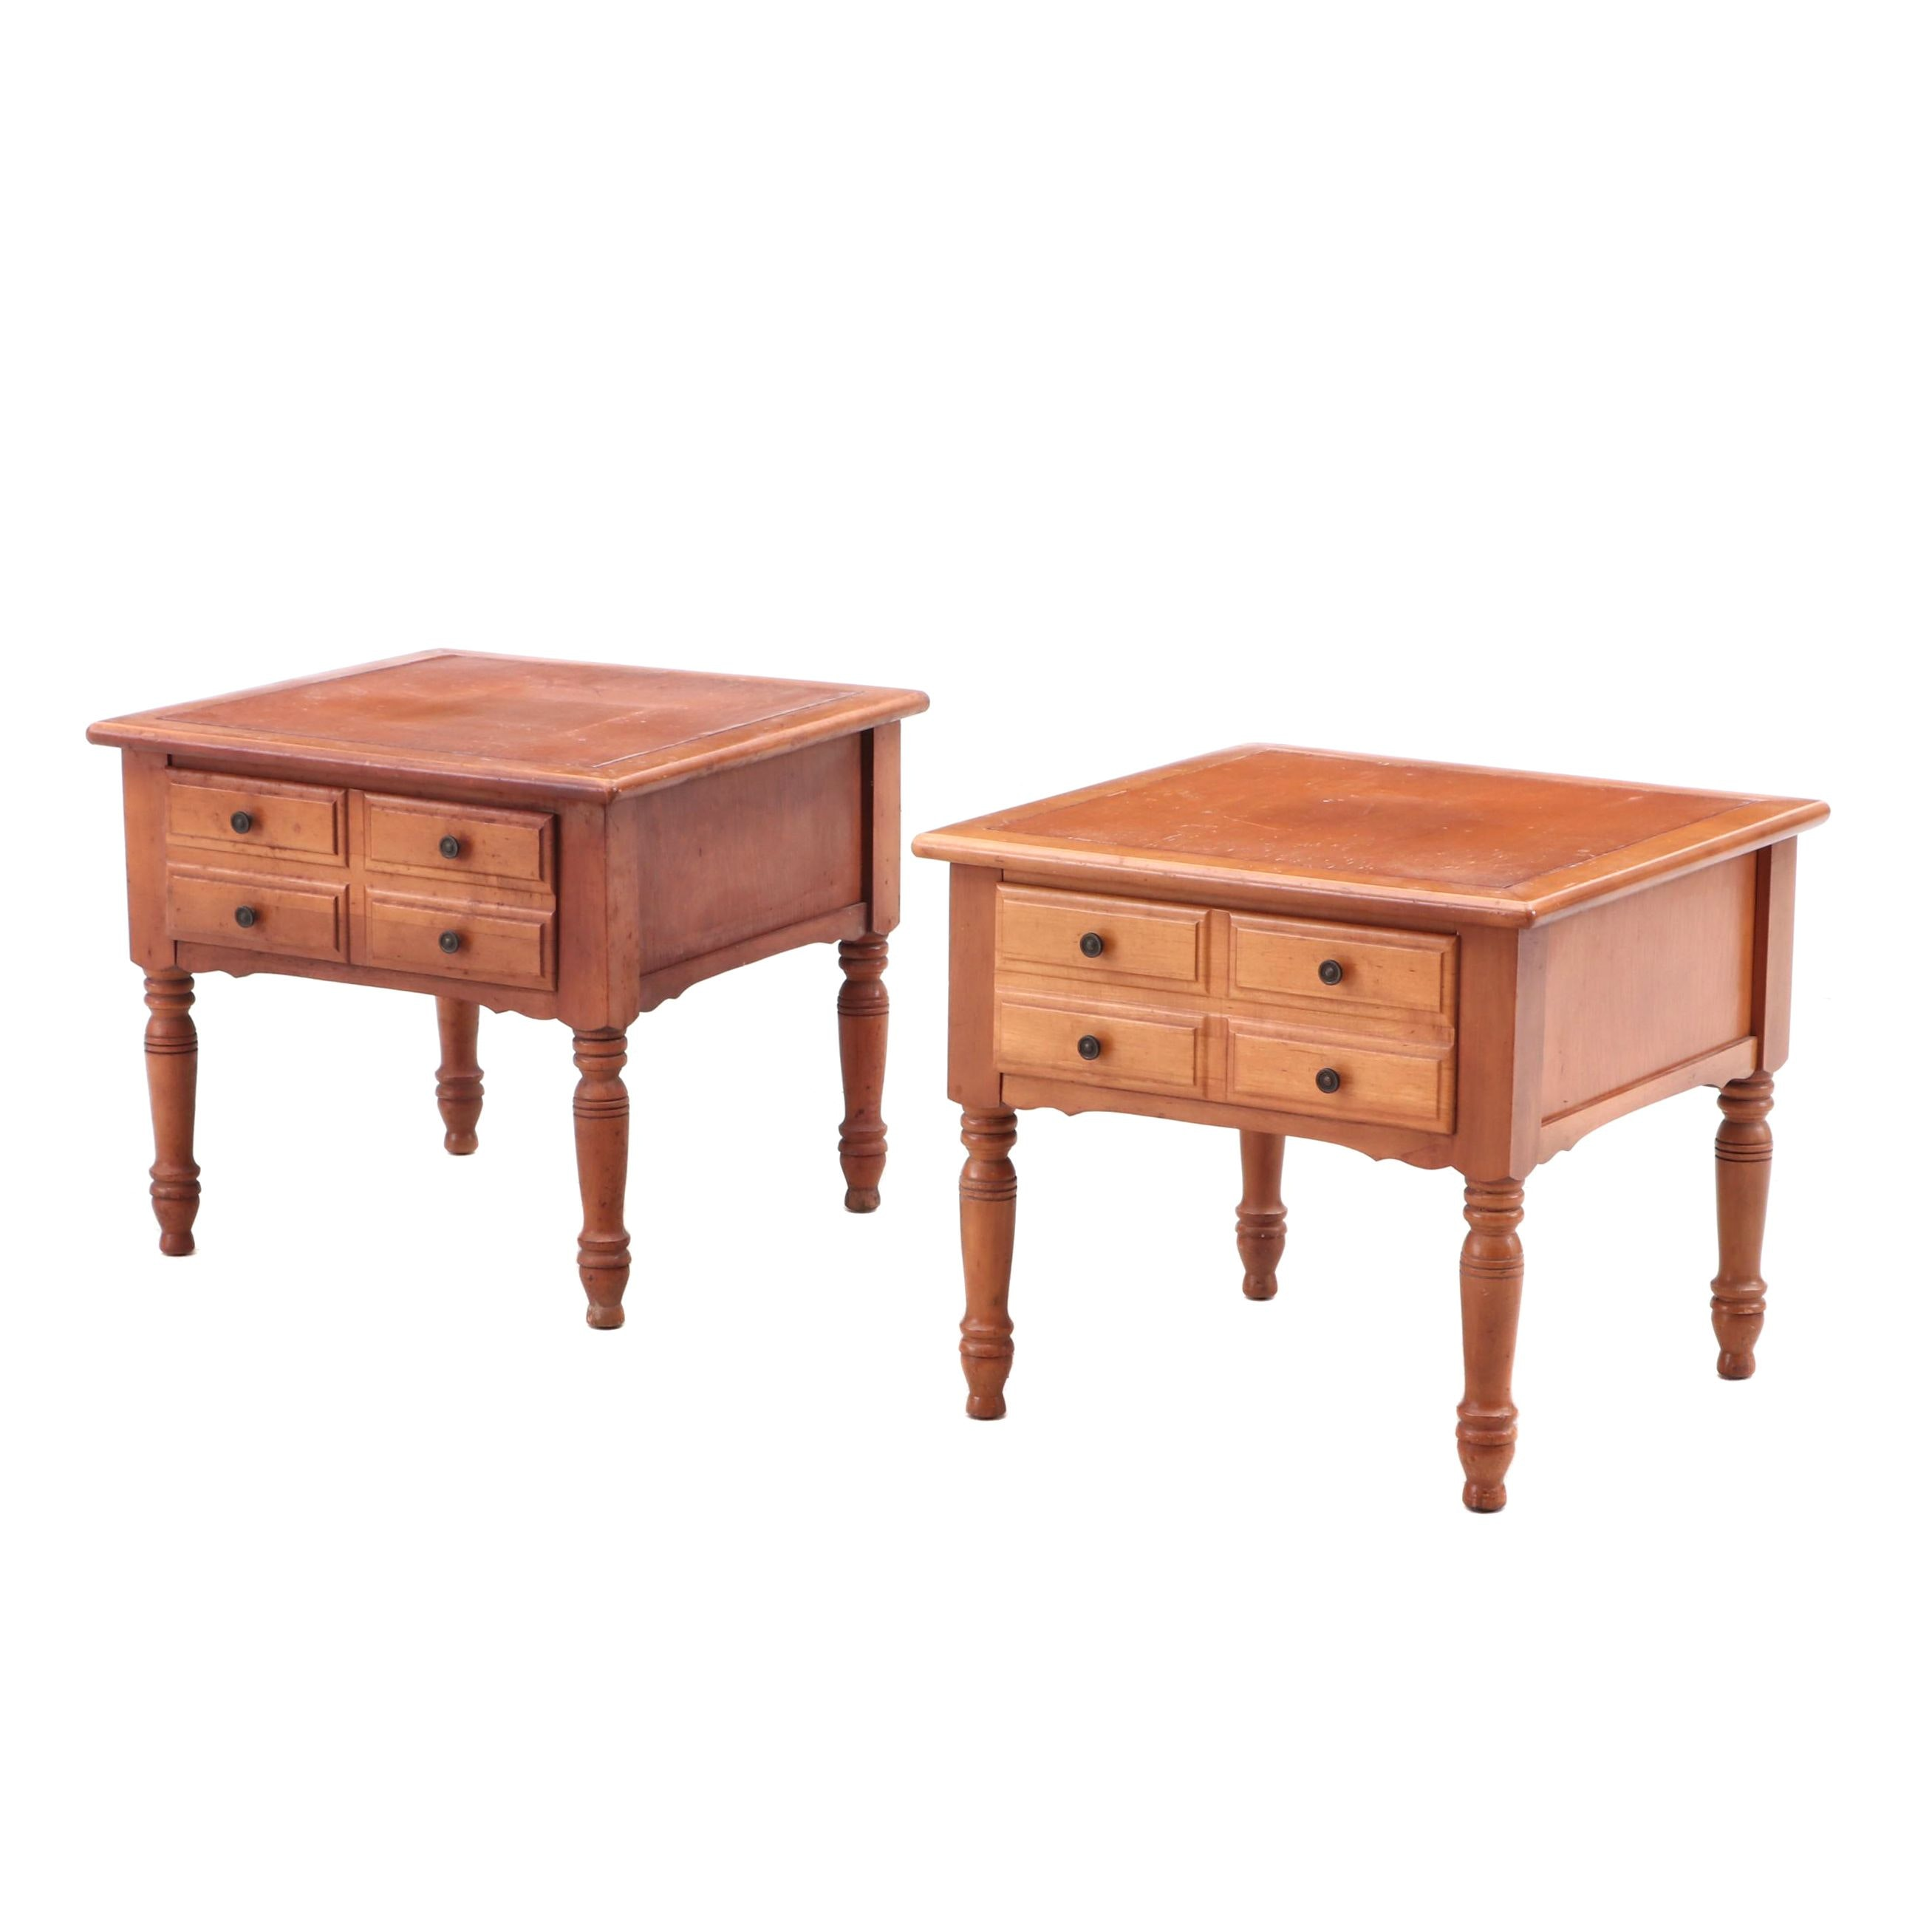 Pair Side Tables in Walnut Finish